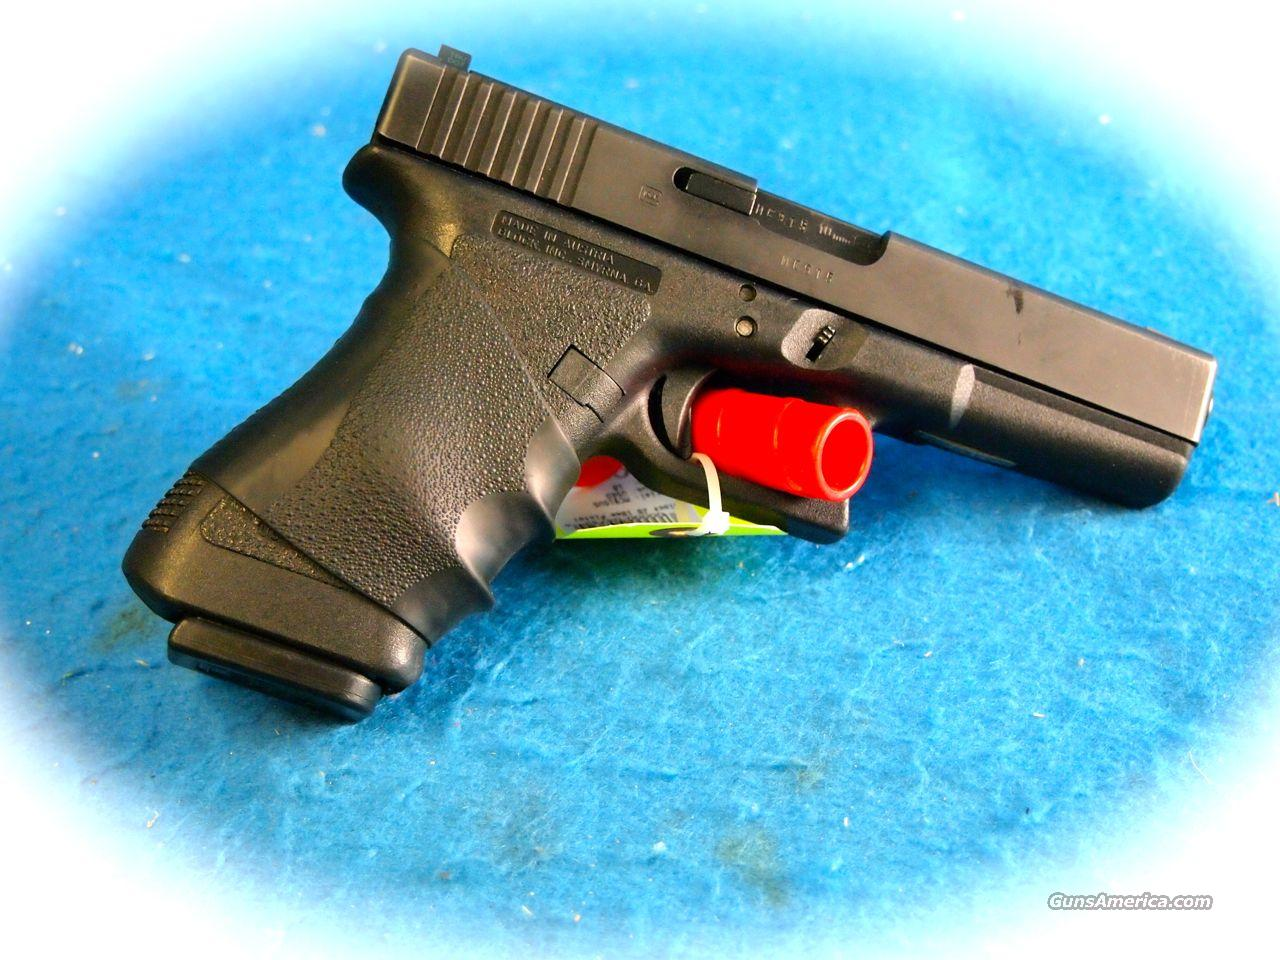 Glock Model 20 2nd Gen 10MM Pistol **Used**  Guns > Pistols > Glock Pistols > 20/21